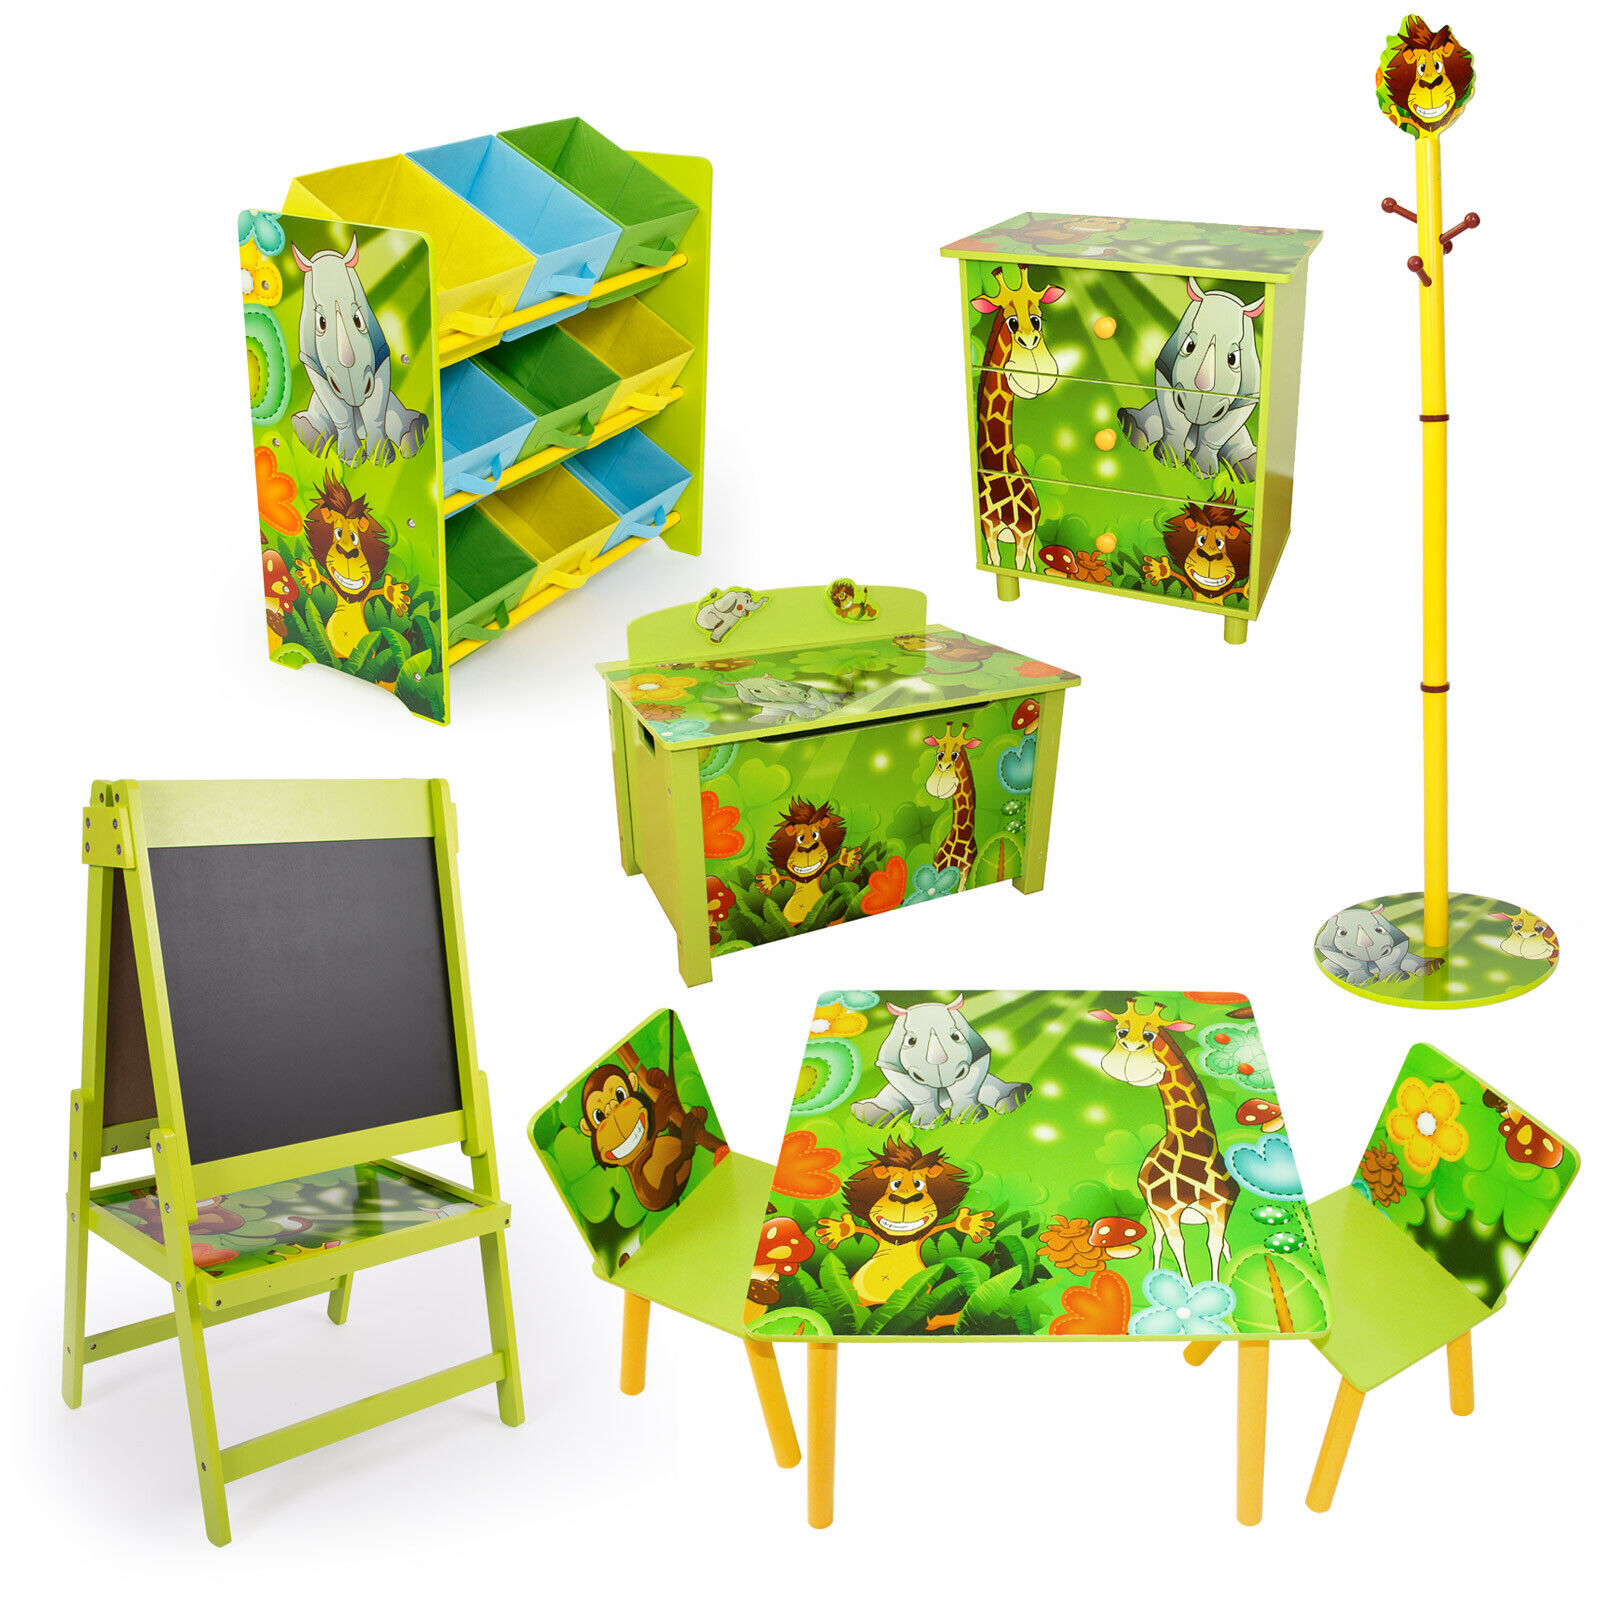 kinderm bel kinderzimmer m bel sitzgruppe spielzeugkiste tafel kommode dschungel. Black Bedroom Furniture Sets. Home Design Ideas